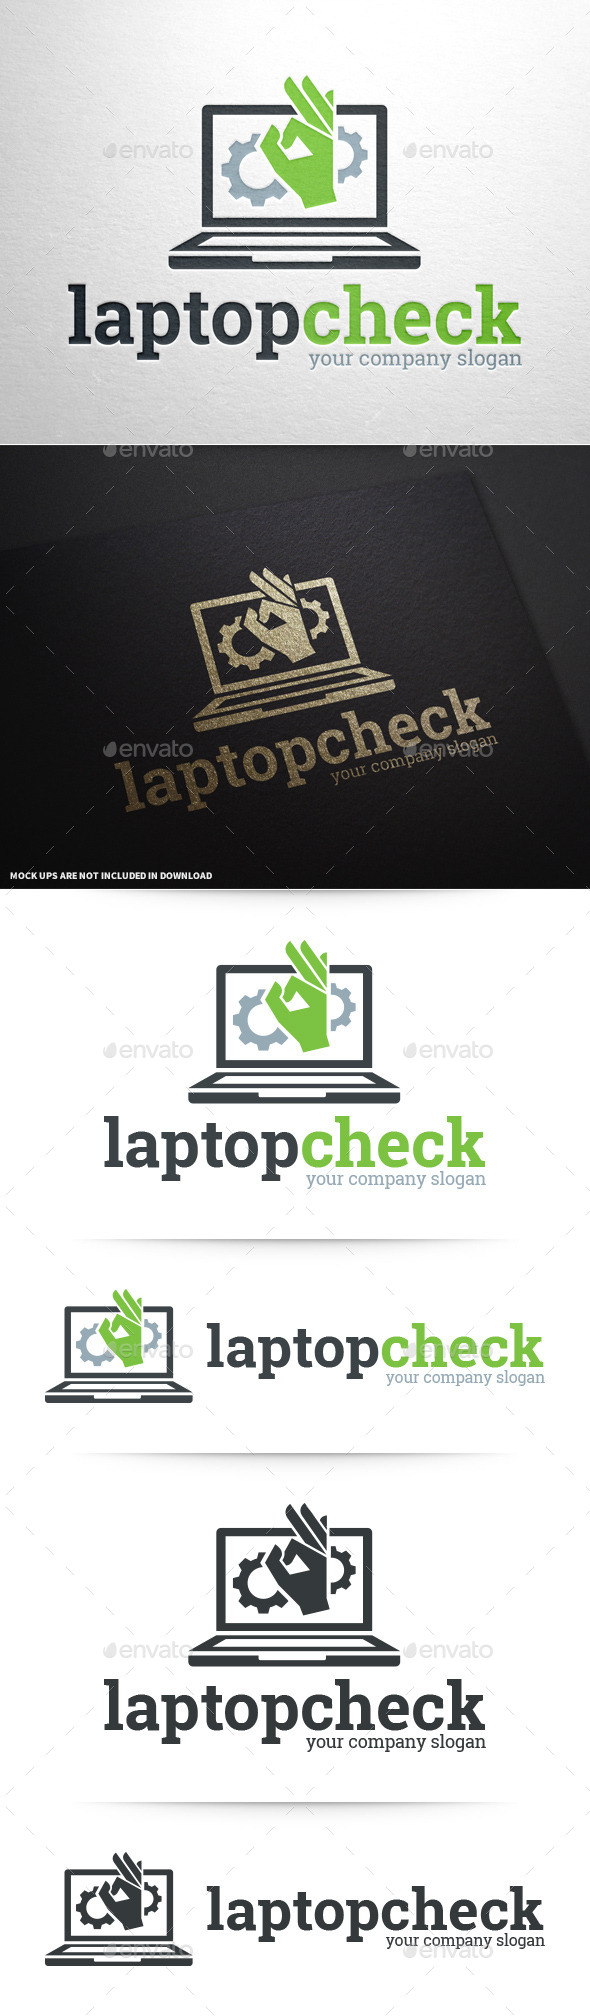 GraphicRiver Laptop Check Logo Template 10618971